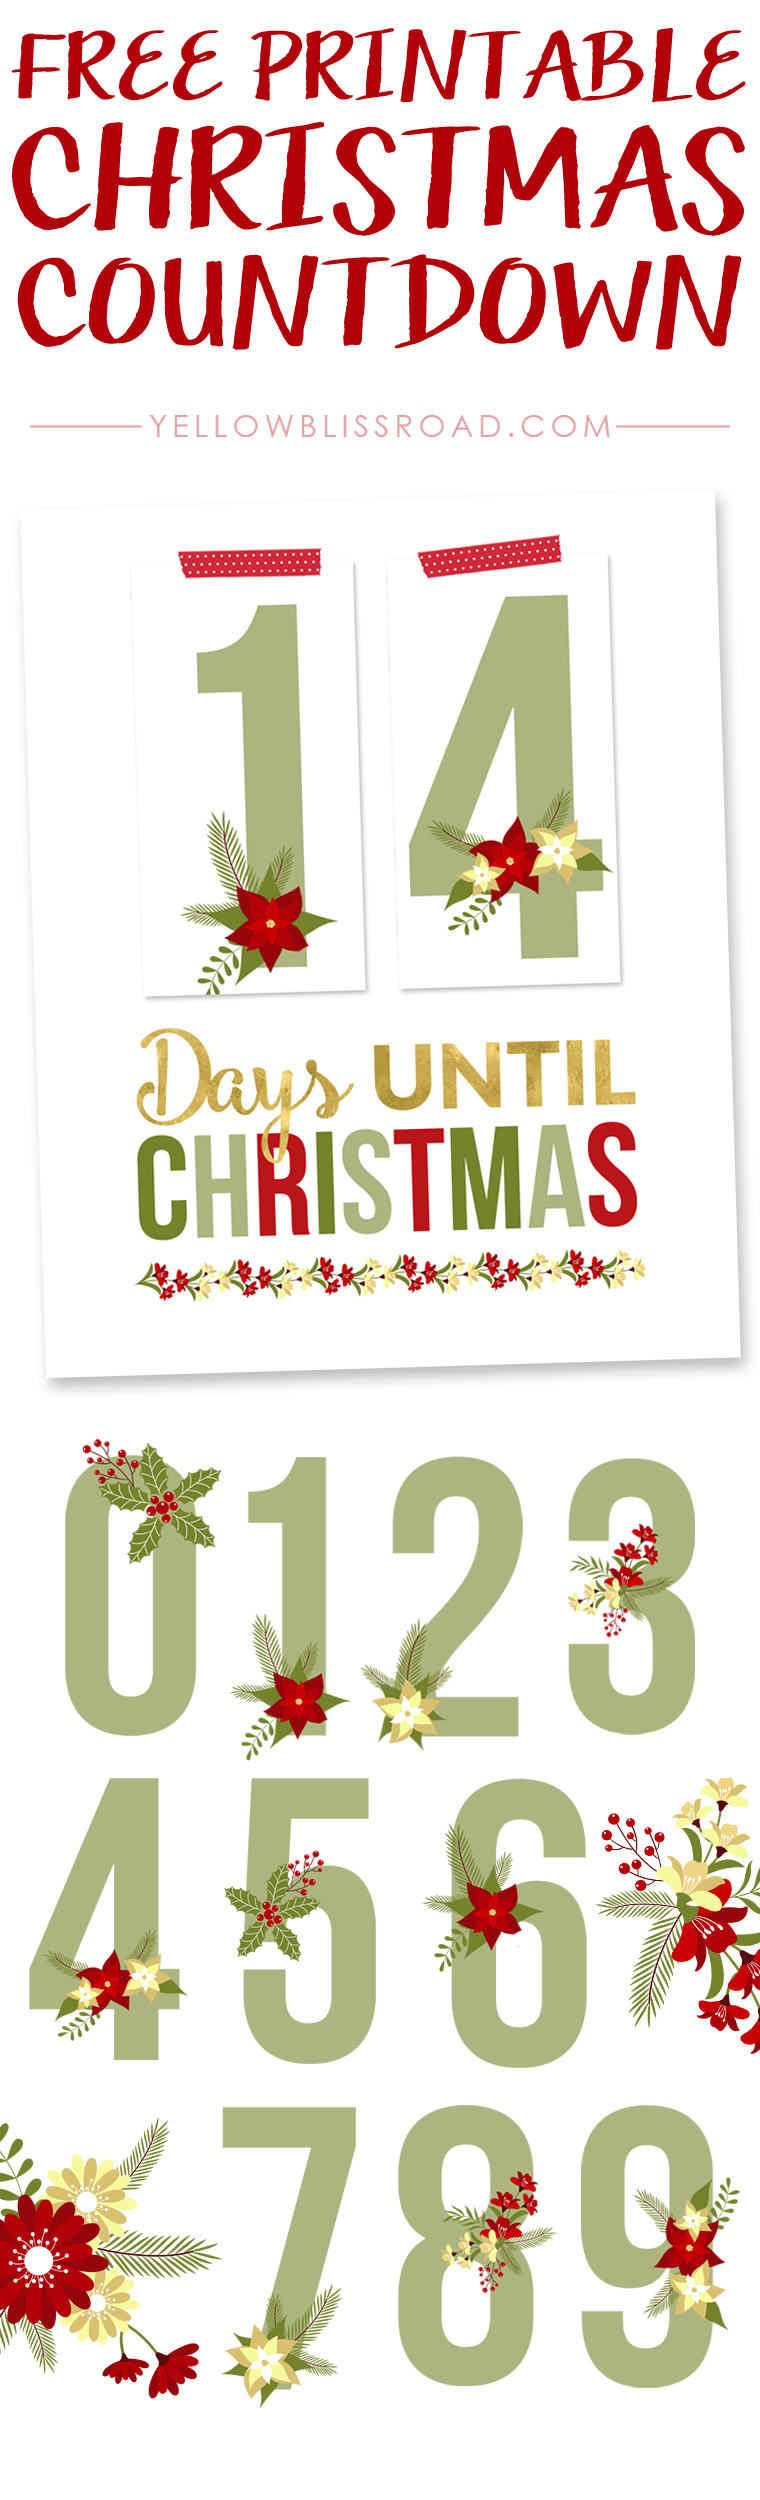 Free Printable Christmas Countdown - Yellow Bliss Road - Christmas Countdown Free Printable